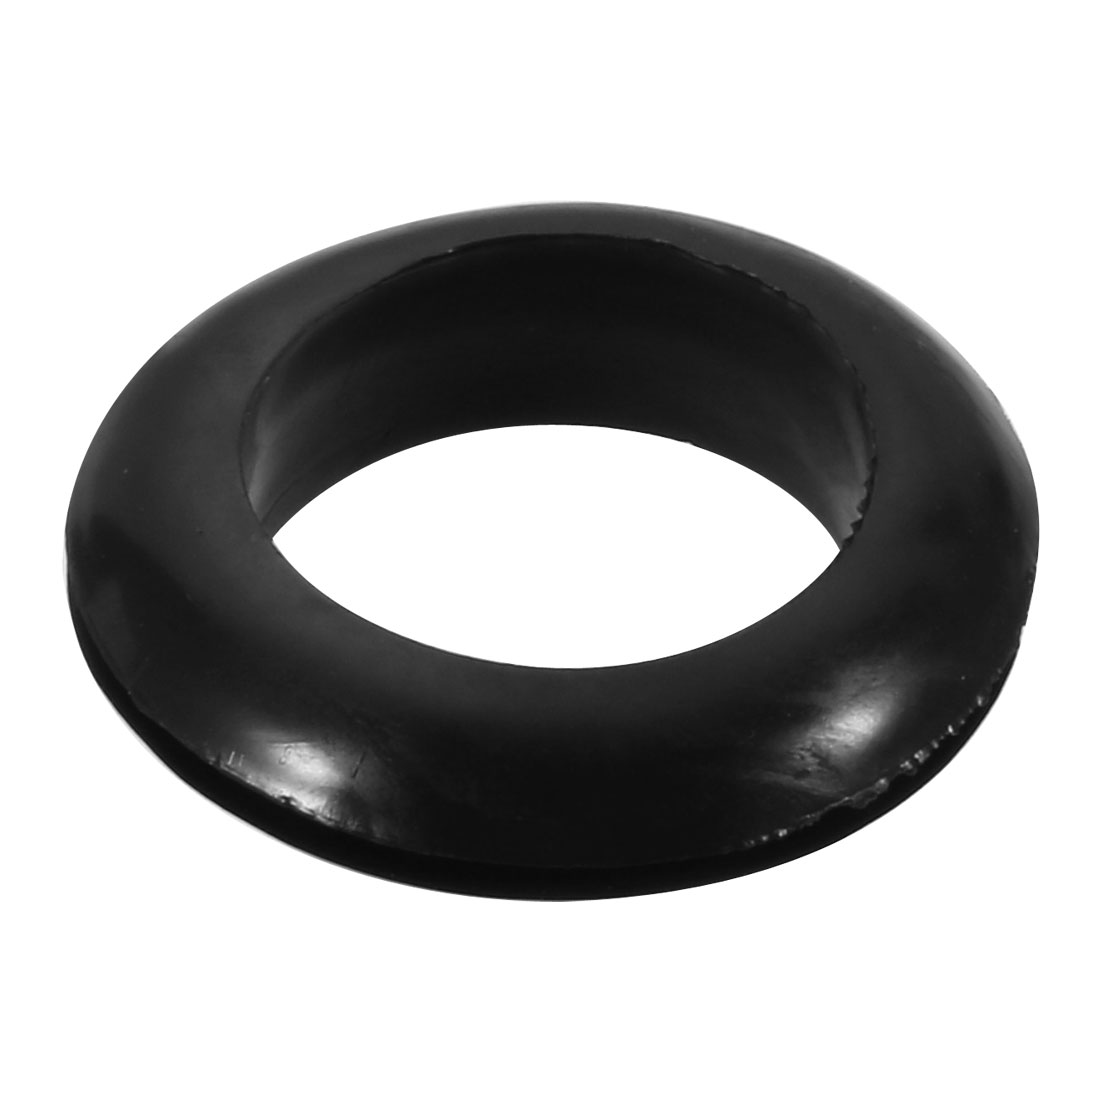 Double Side Rubber Ring Sealing Grommet Wire Grommets 44mm x 12mm